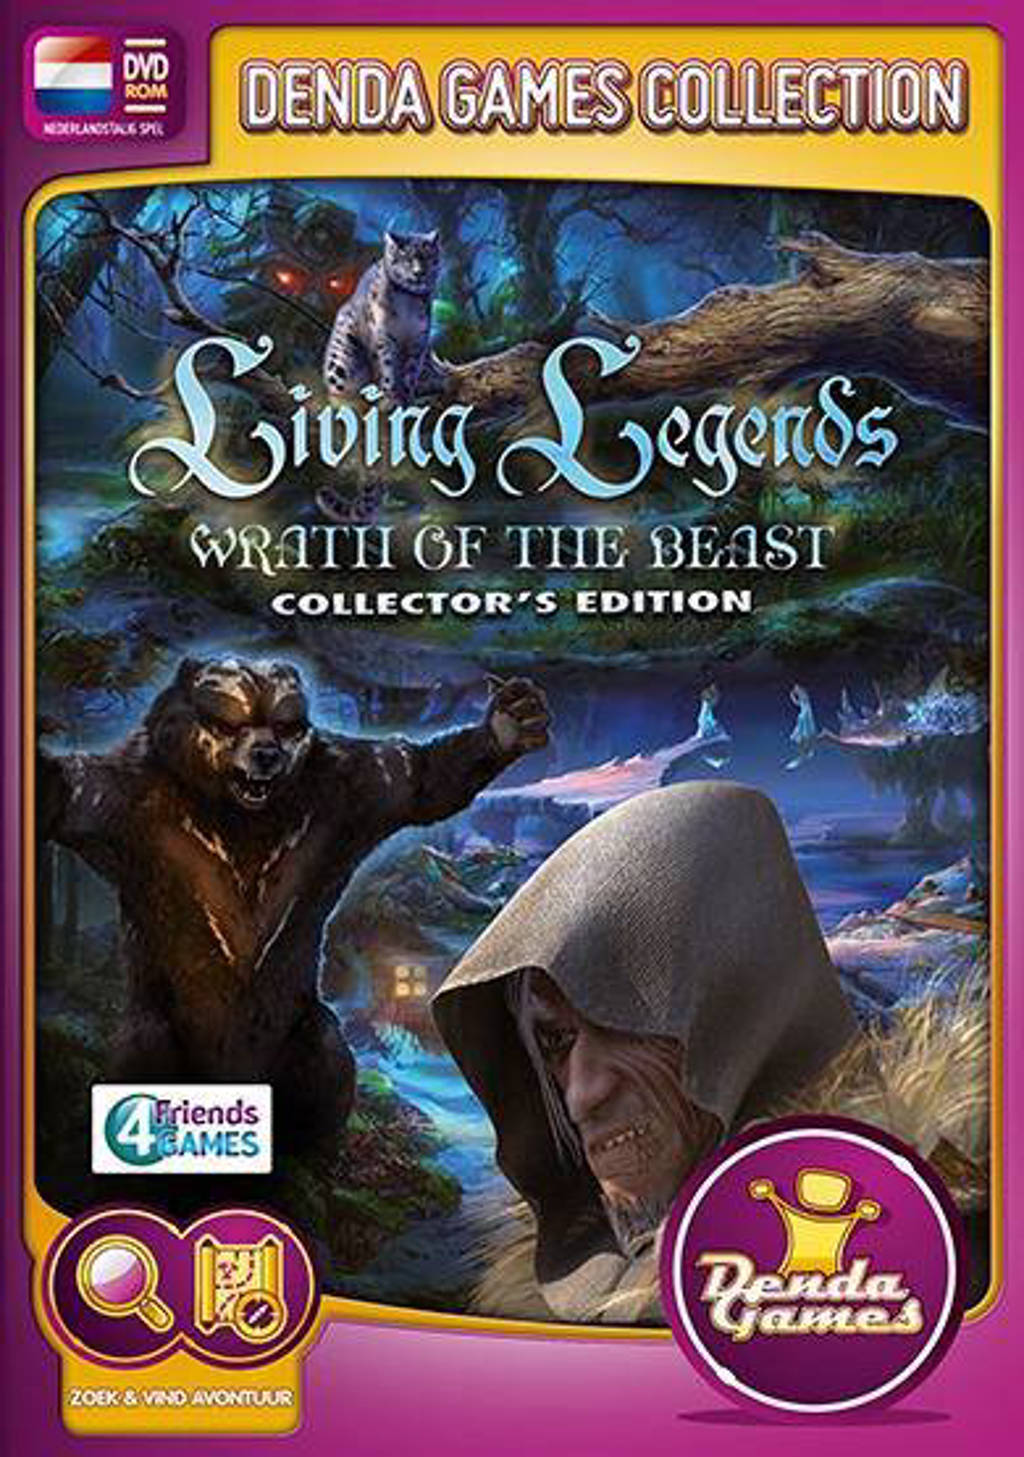 Living legends - Wrath of the beast (Collectors edition) (PC)